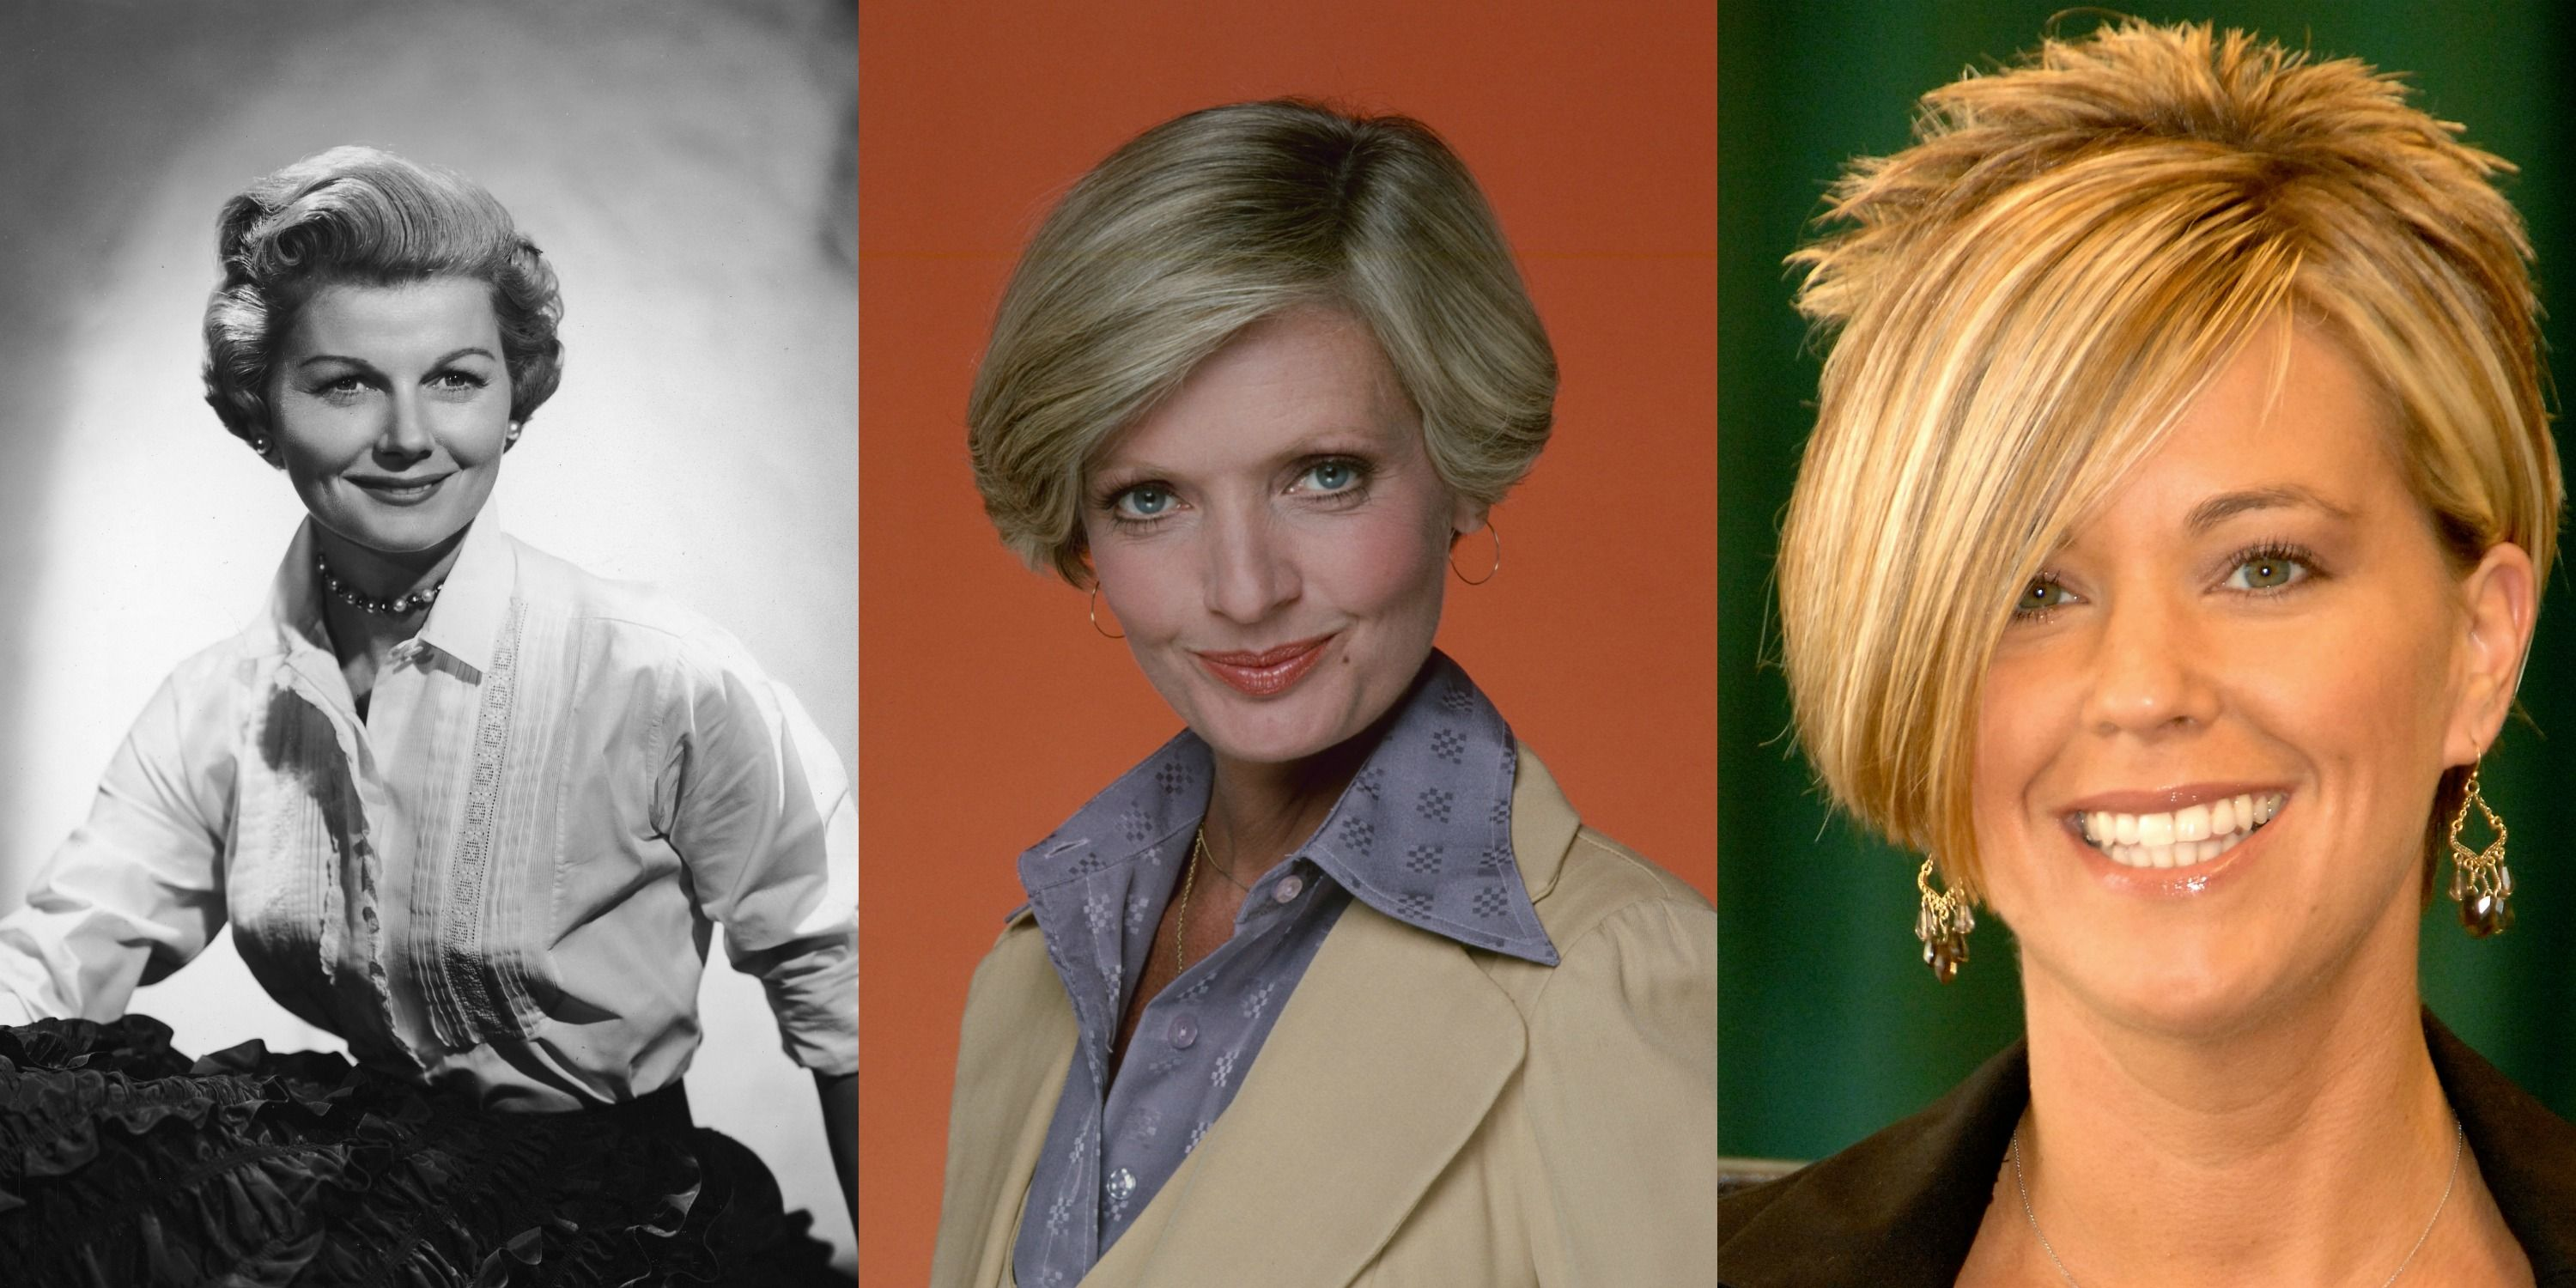 Mom Haircut History The Evolution Of Mom Haircuts